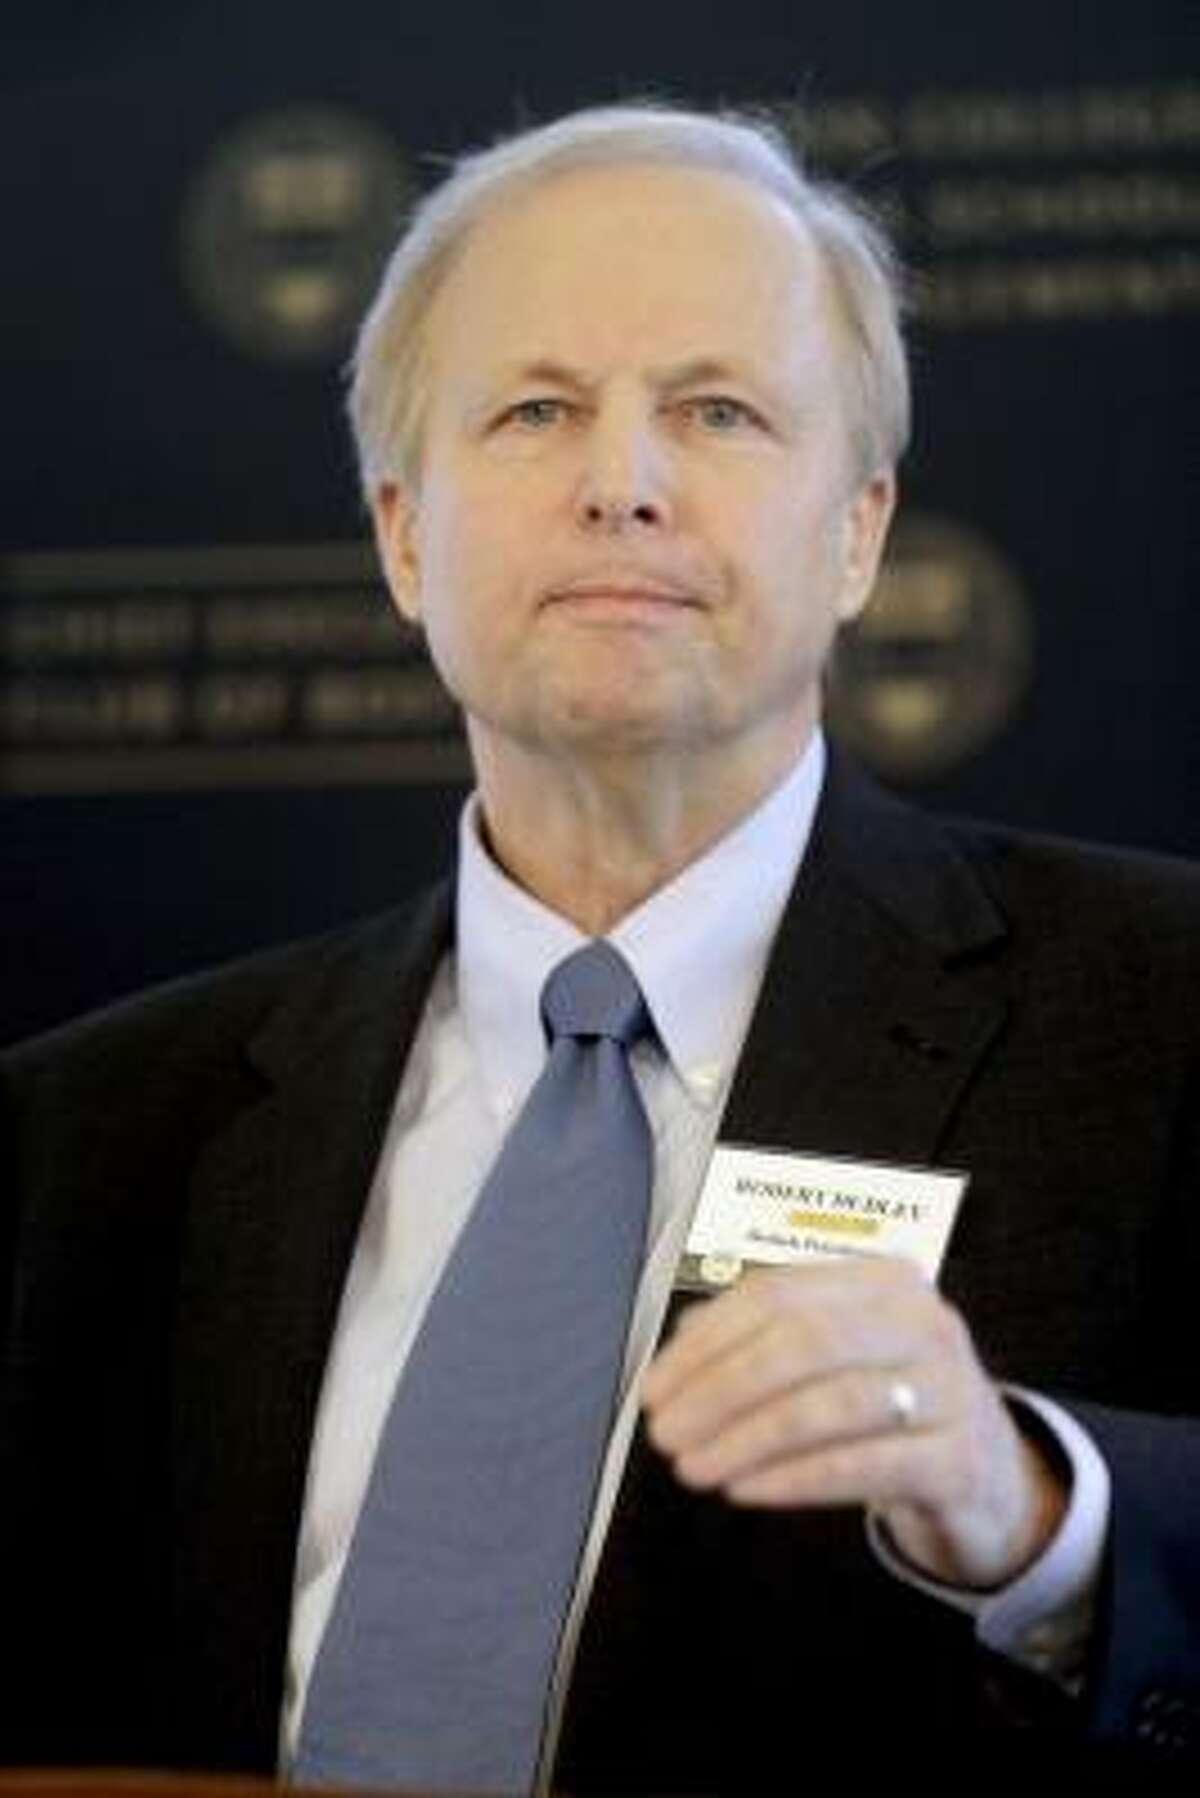 Bob Dudley, BP's executive vice president for the Americas and Asia when the rig exploded, now CEO of the company